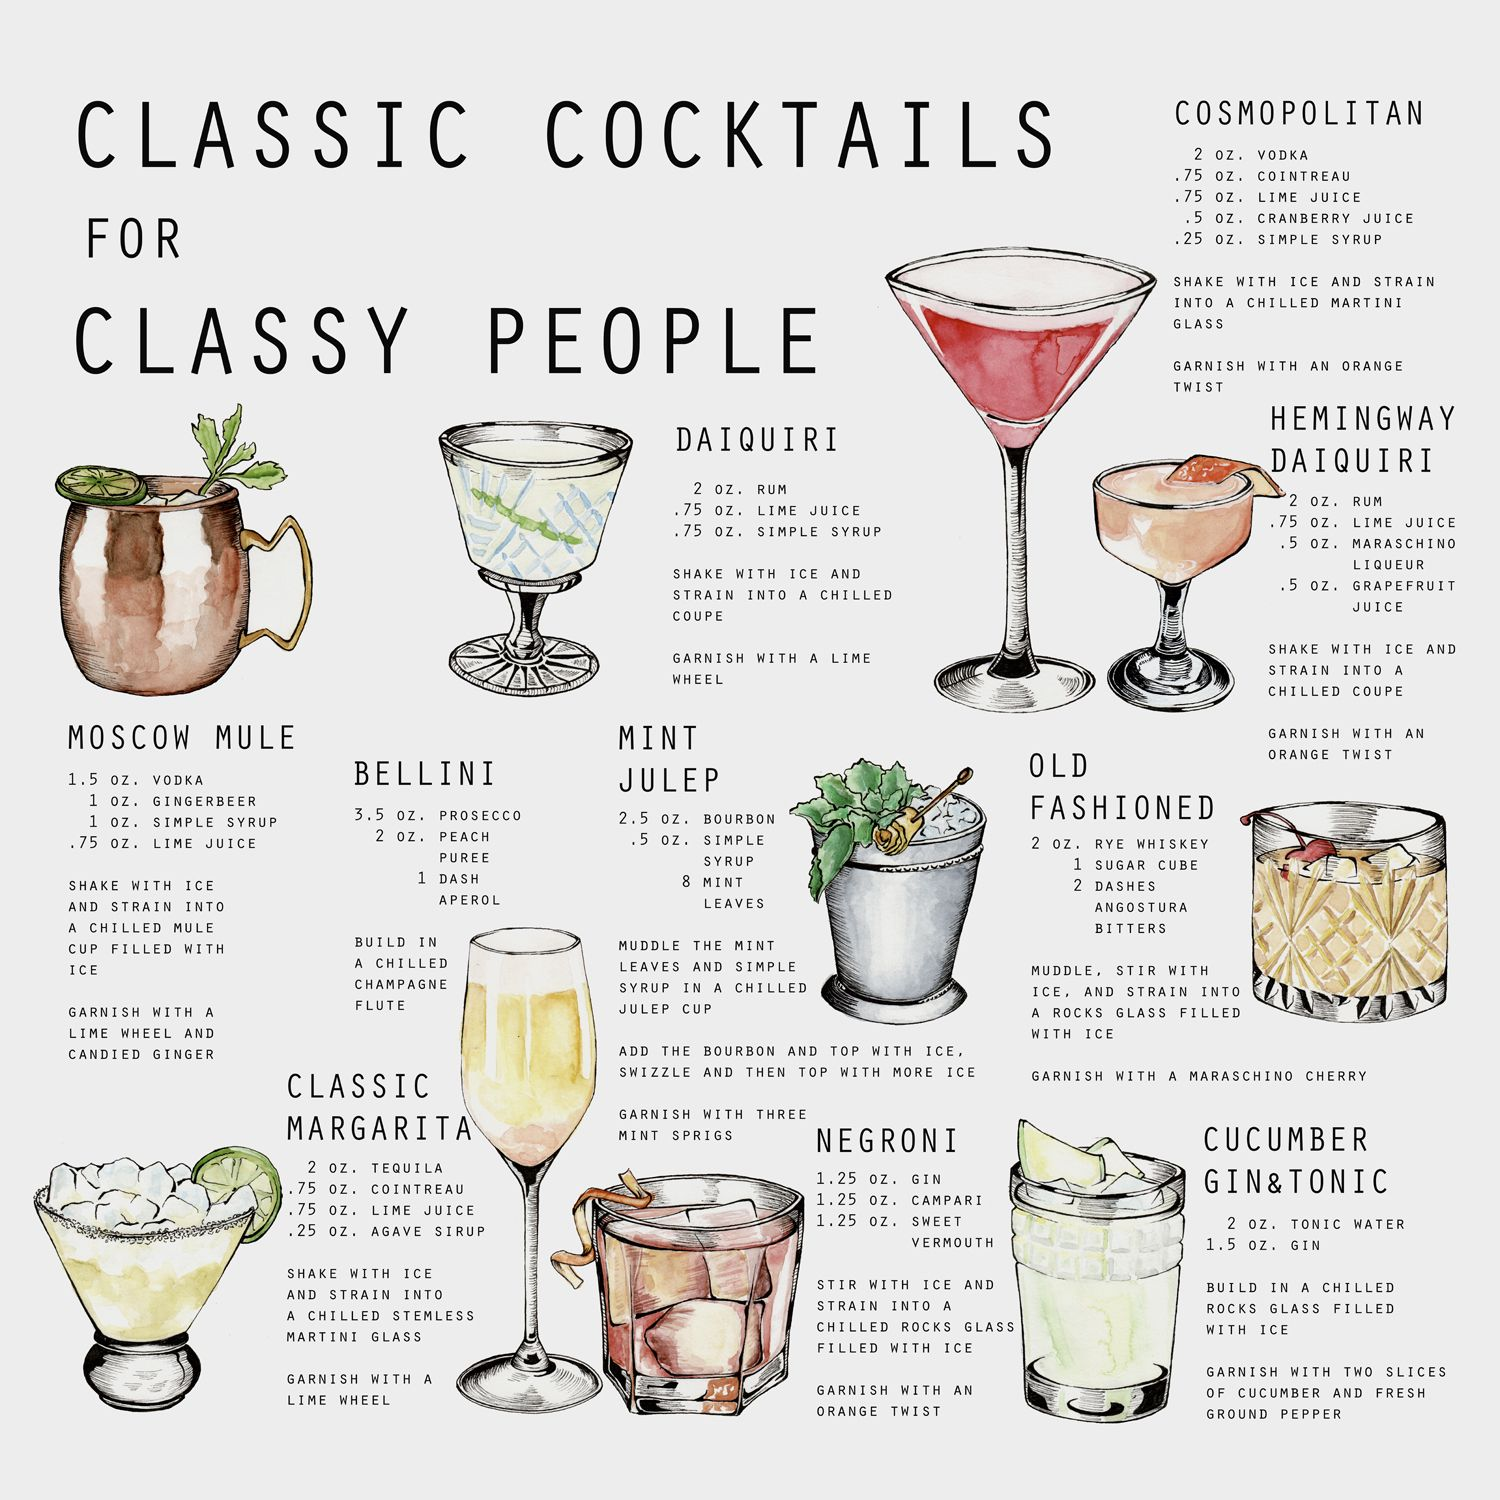 CLASSIC COCKTAILS, BY STINE NYGARD In 2019